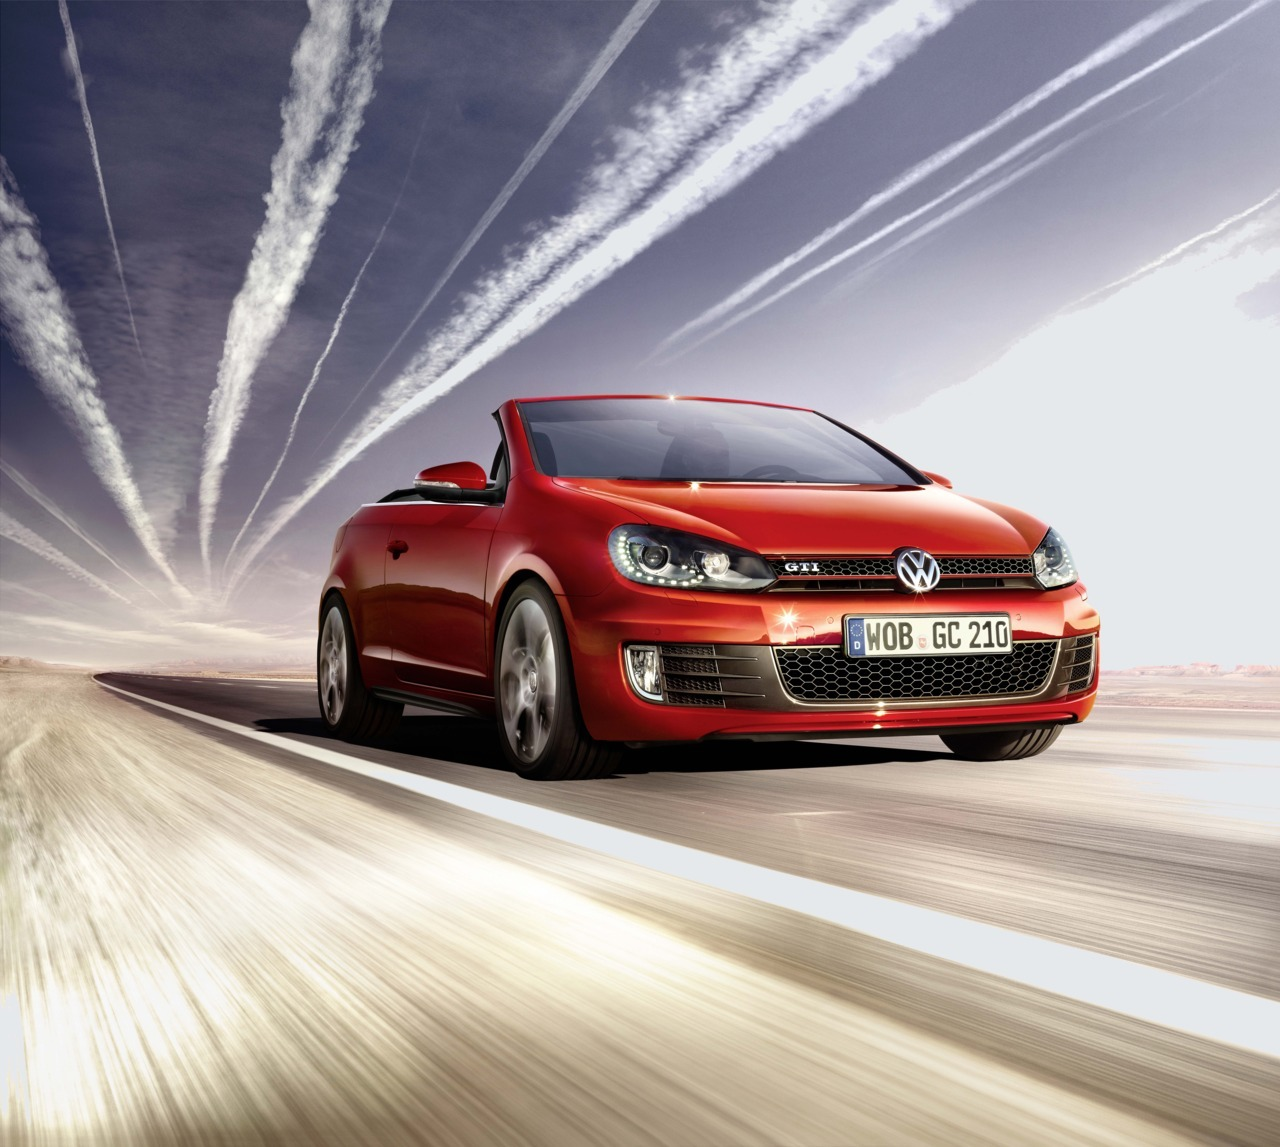 "facesar:  Alex Rank realized the VOLKSWAGEN Golf GTI cabriolet campaign ""The shadow follows. As best he can."".Art Direction: BEHNAZ PAKRAVESH. Agency: DDB TRIBAL Berlin. Production: SEAQUIST A COMPANY.  To see more of Alex' work, please go to http://www.facesar.com/artists/alex-rank.html"